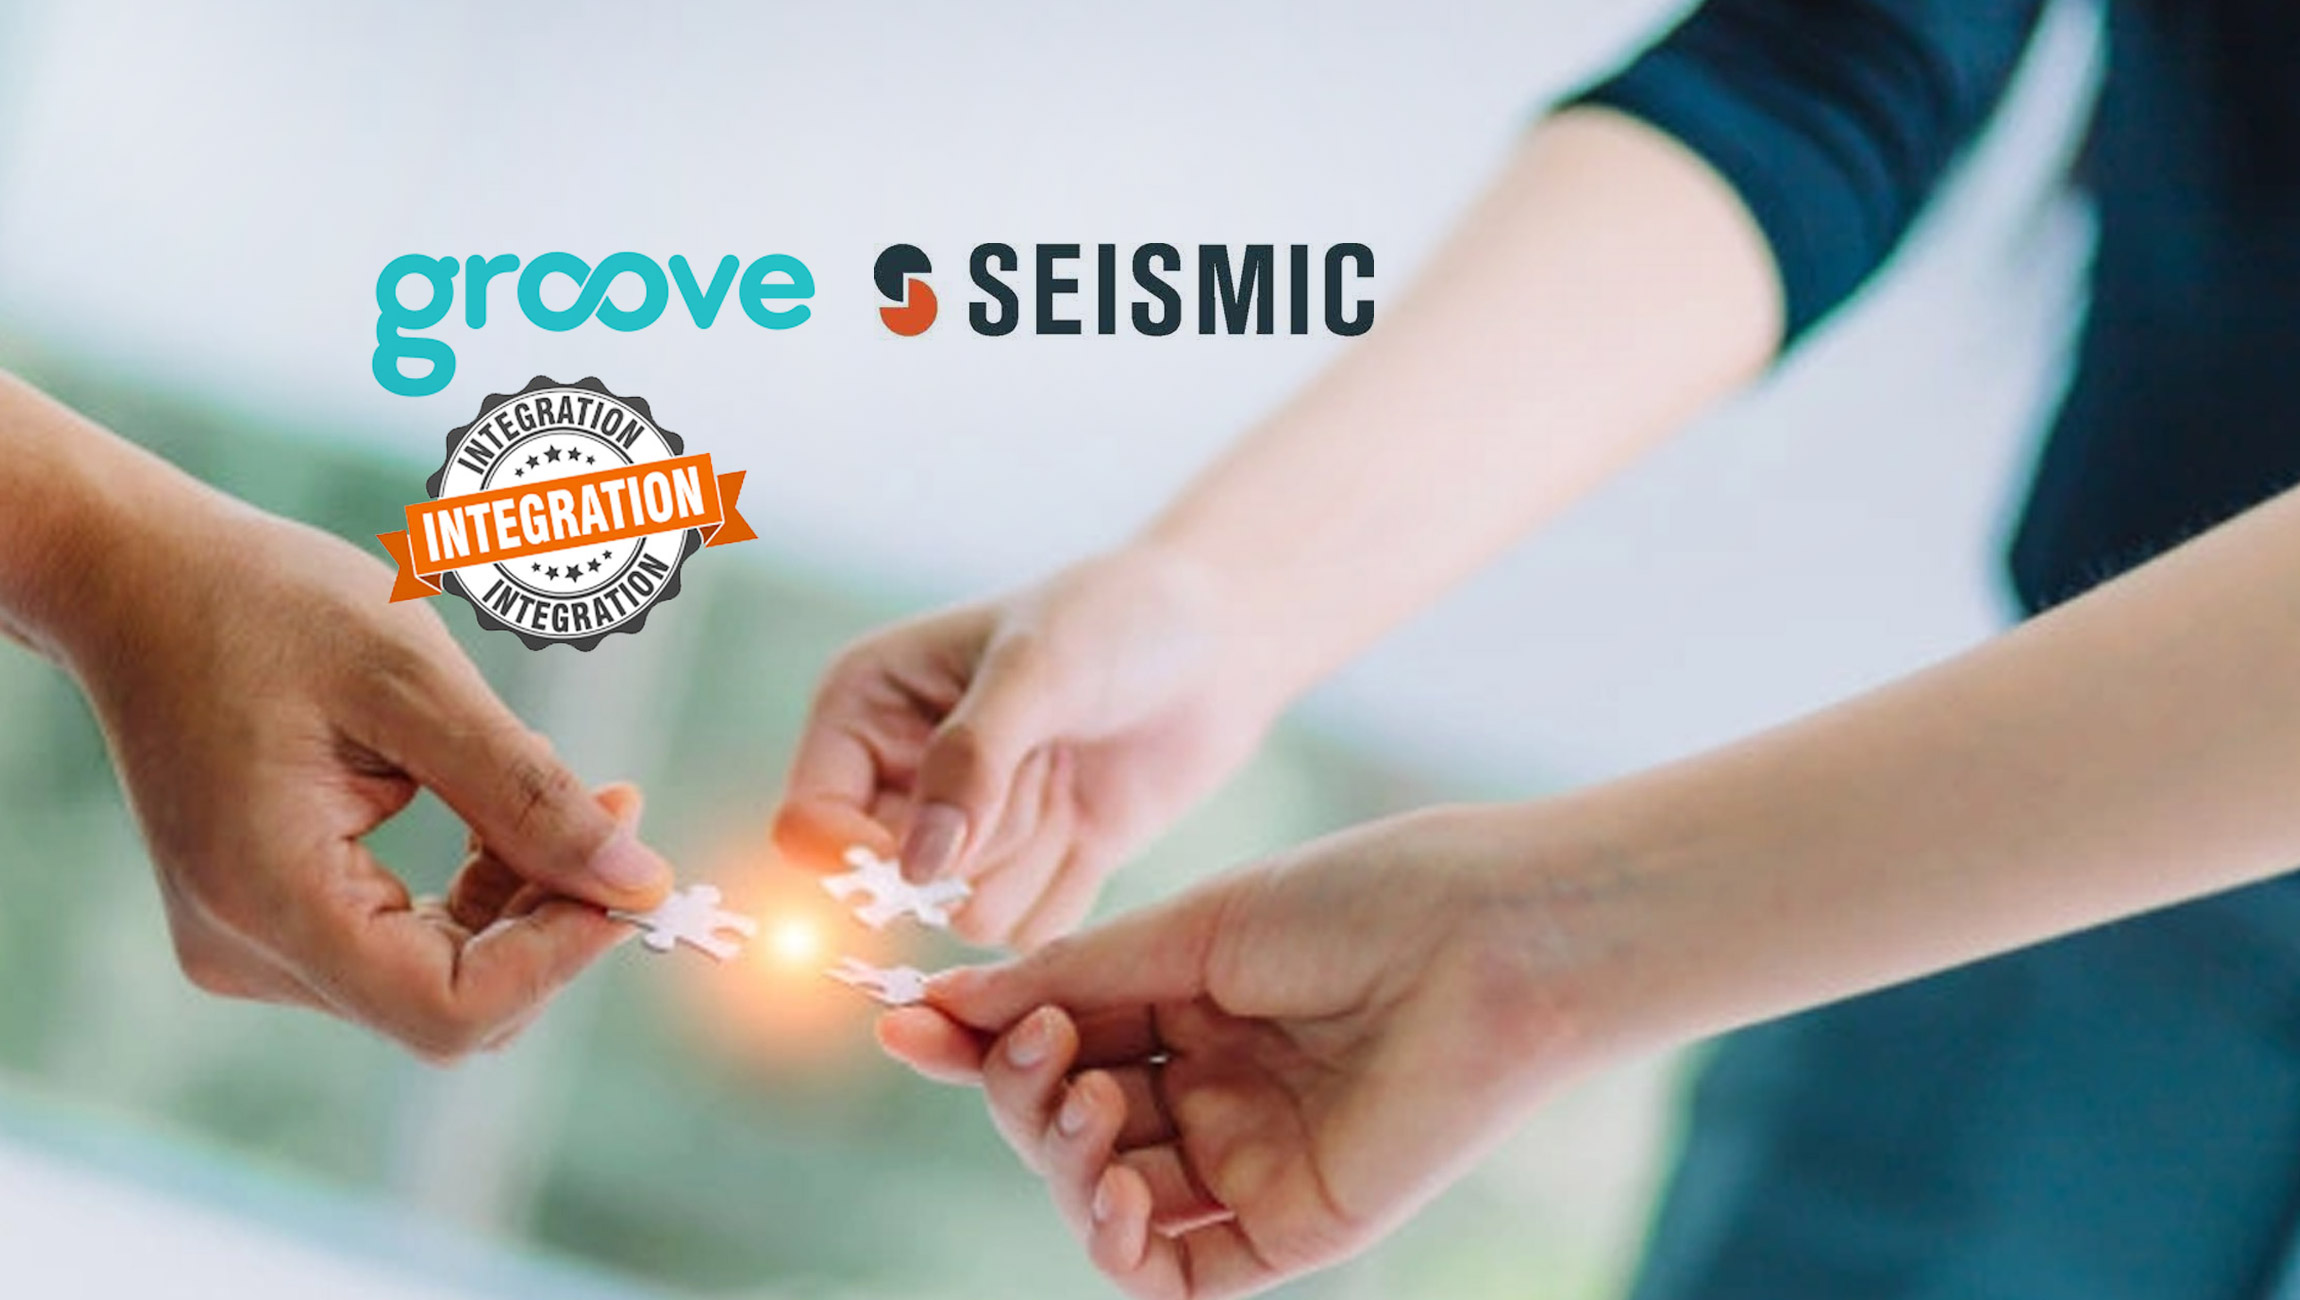 Groove and Seismic Announce New Integration for Building Lasting Relationships and Accelerating Revenue in a Digital-First World